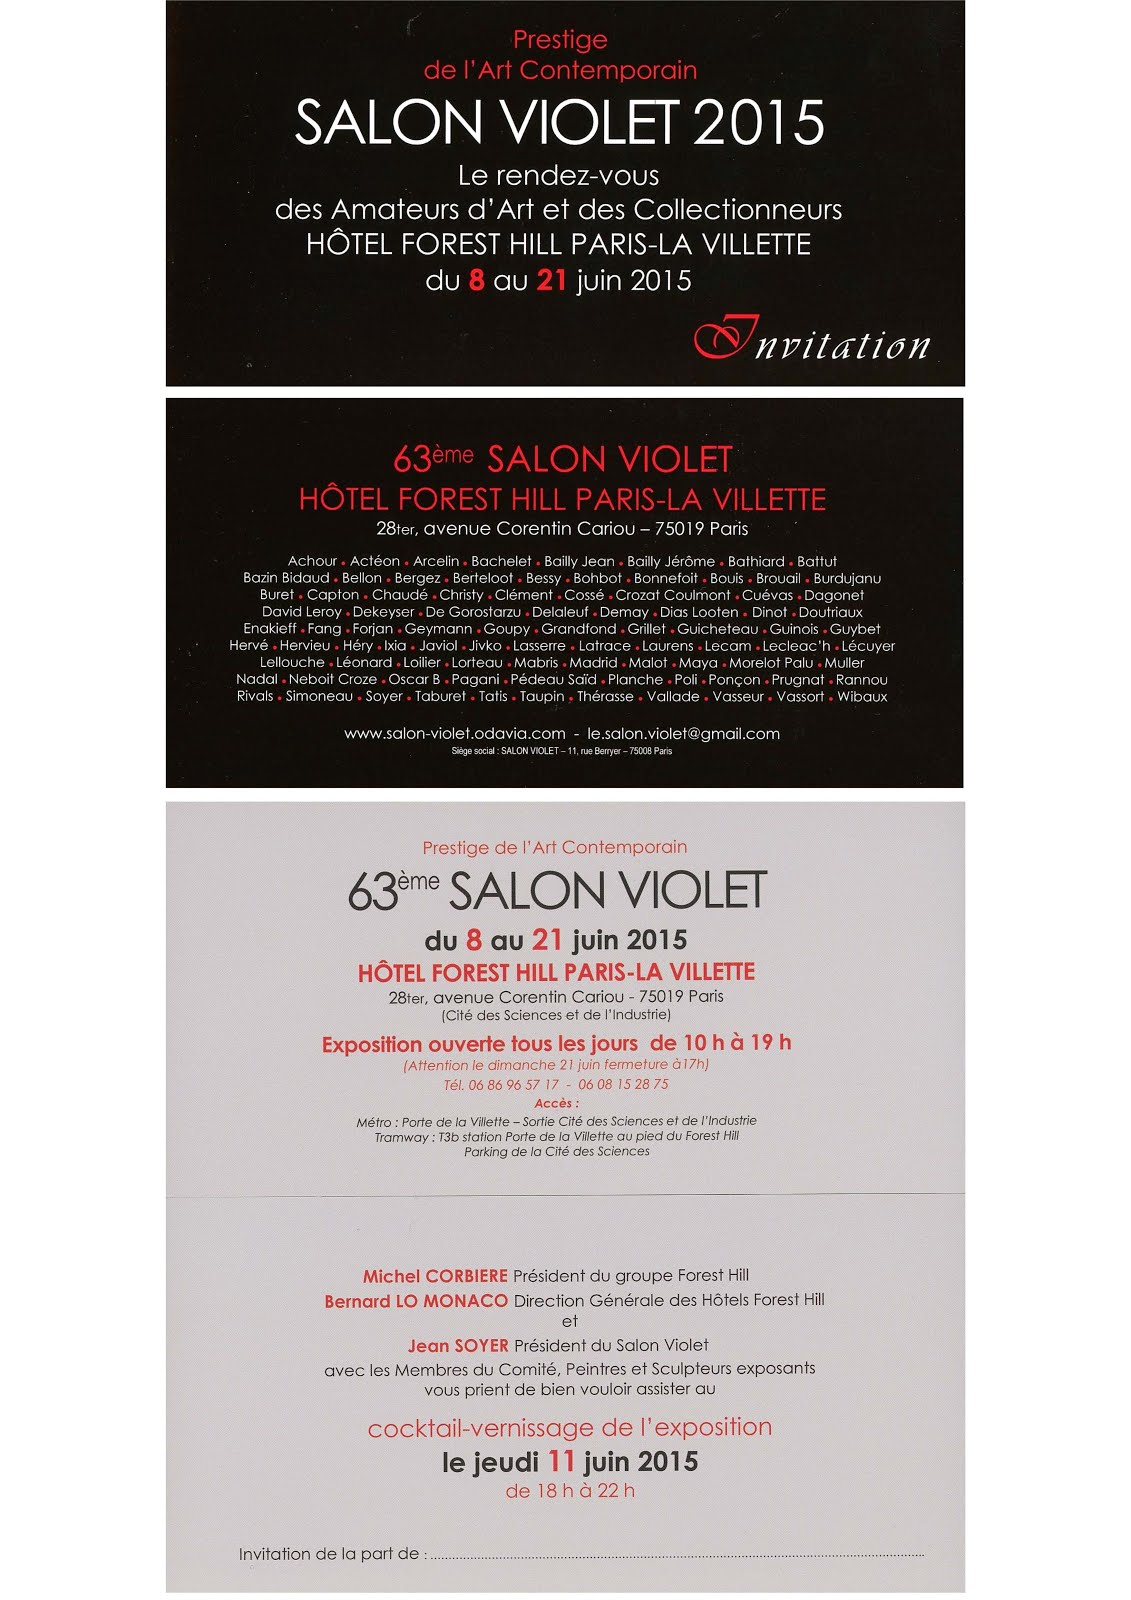 PARIS : CAPTON AU SALON VIOLET DU 8 AU 21 JUIN 2015